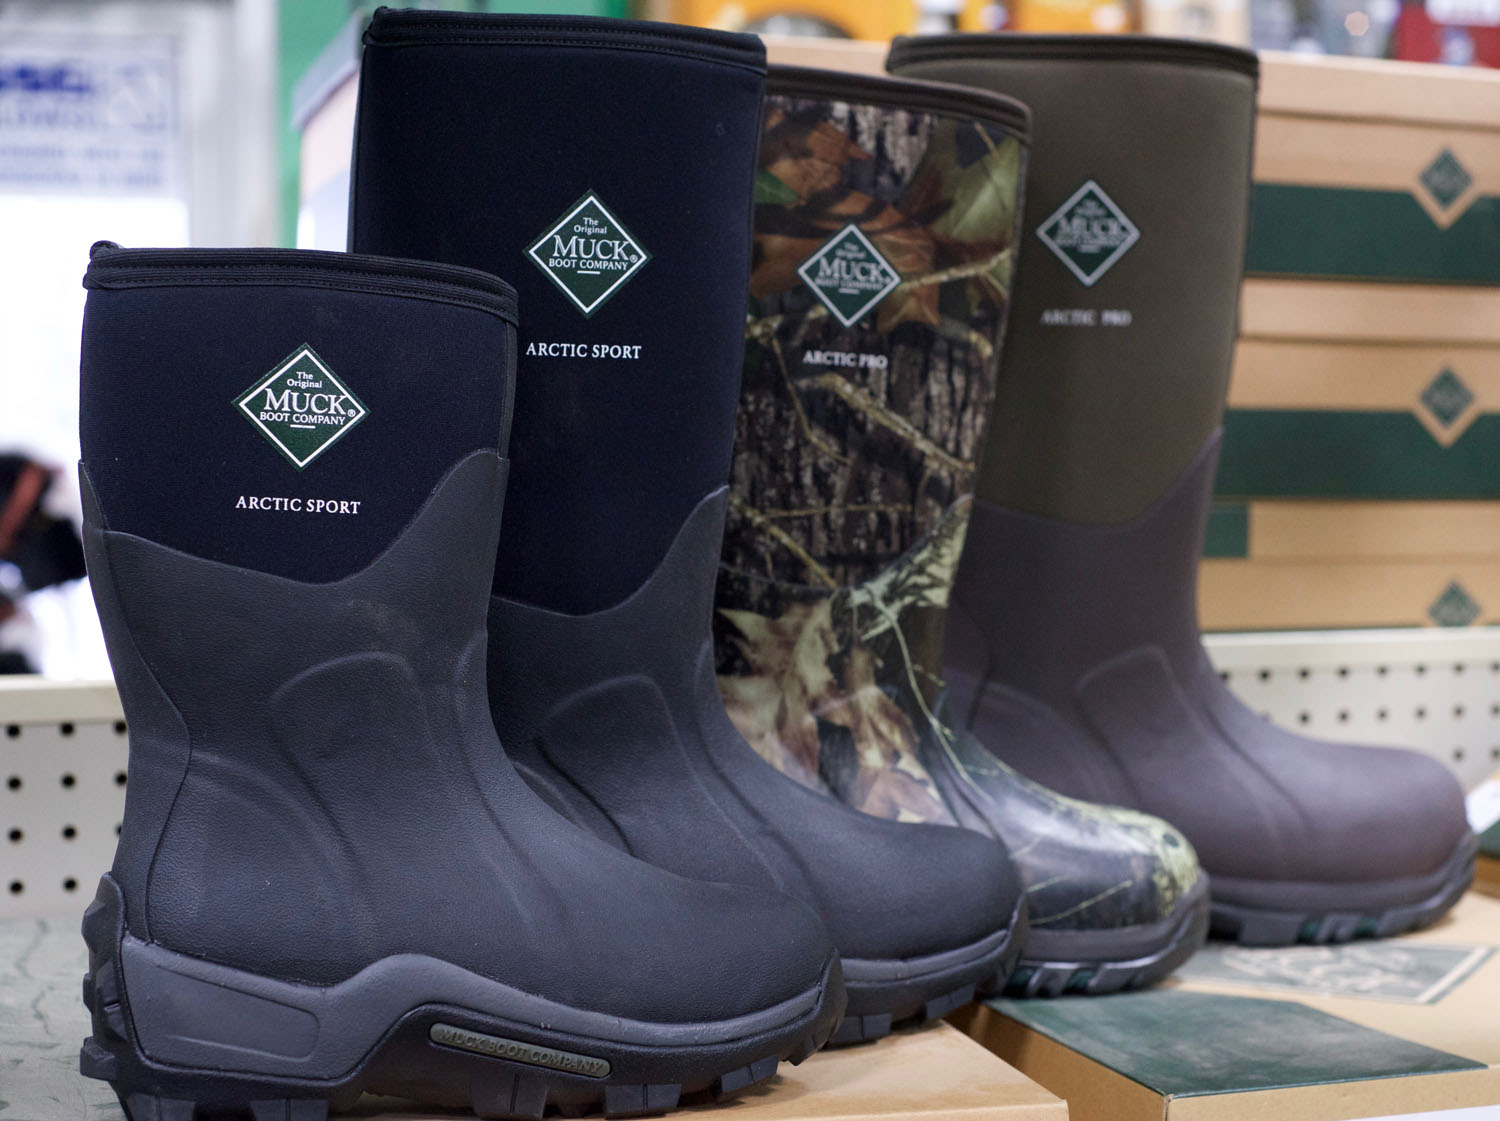 Buying Muck Boots Online